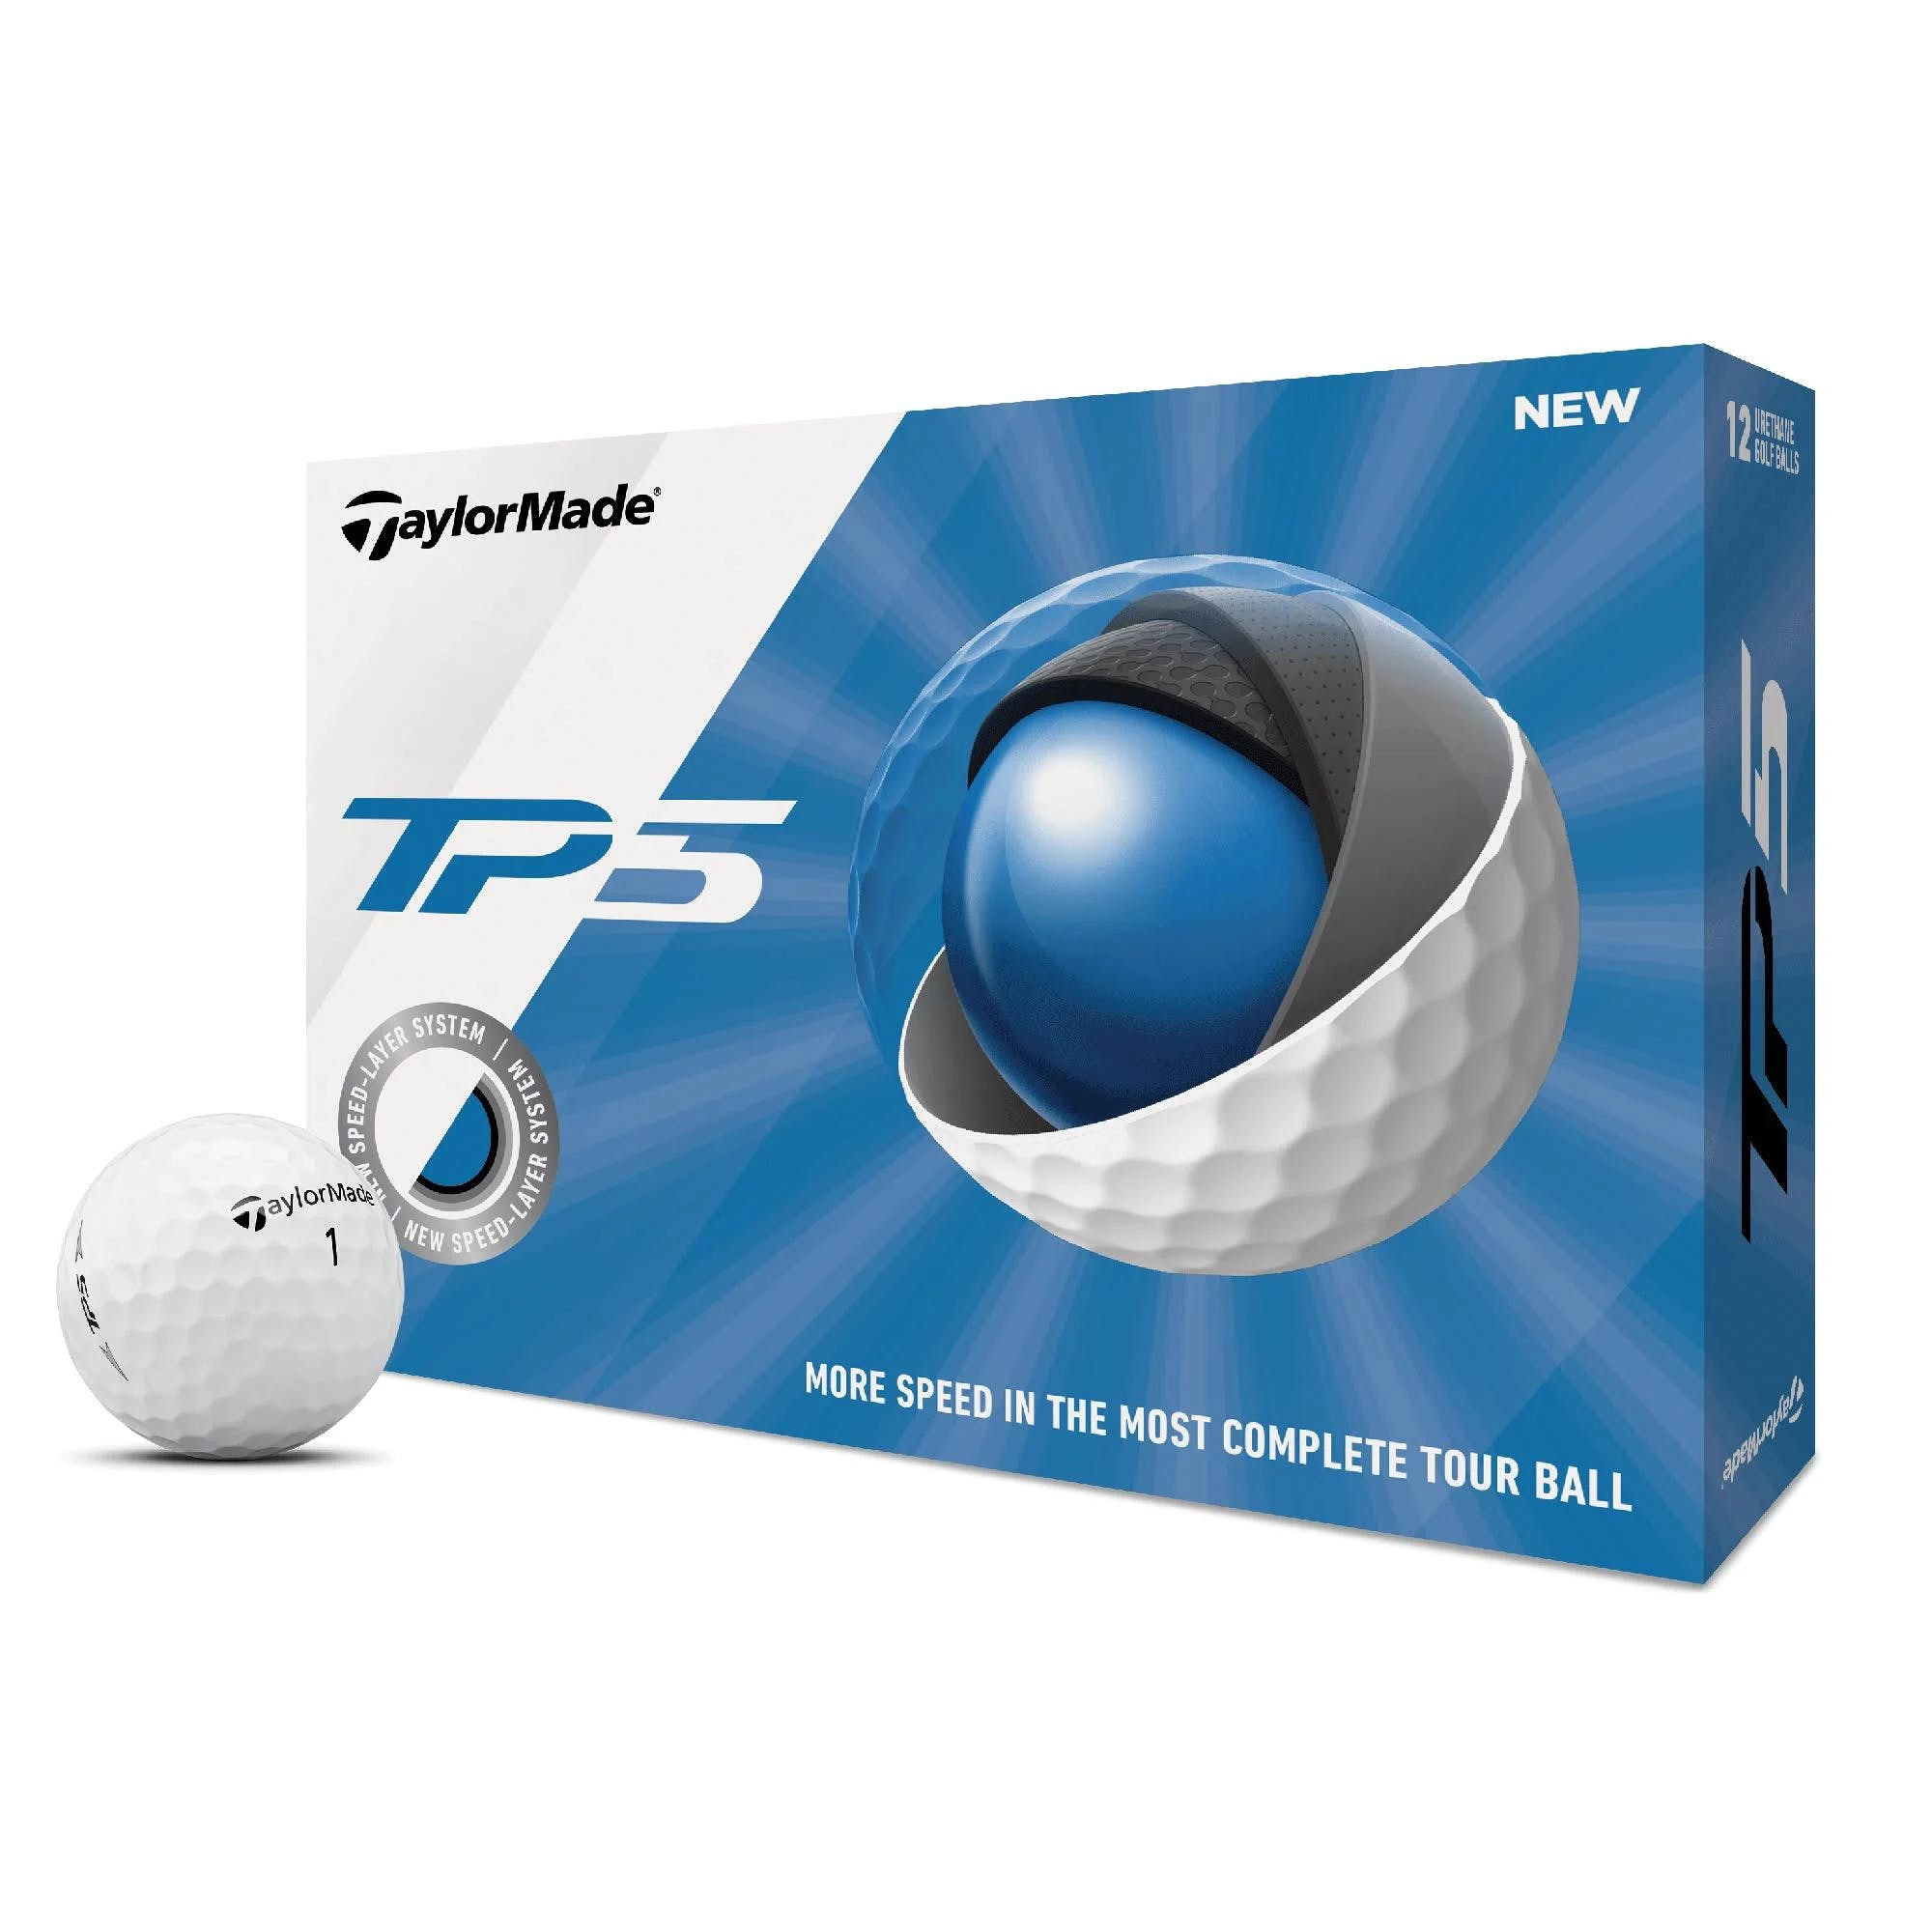 TaylorMade TP5 Golf Balls, White